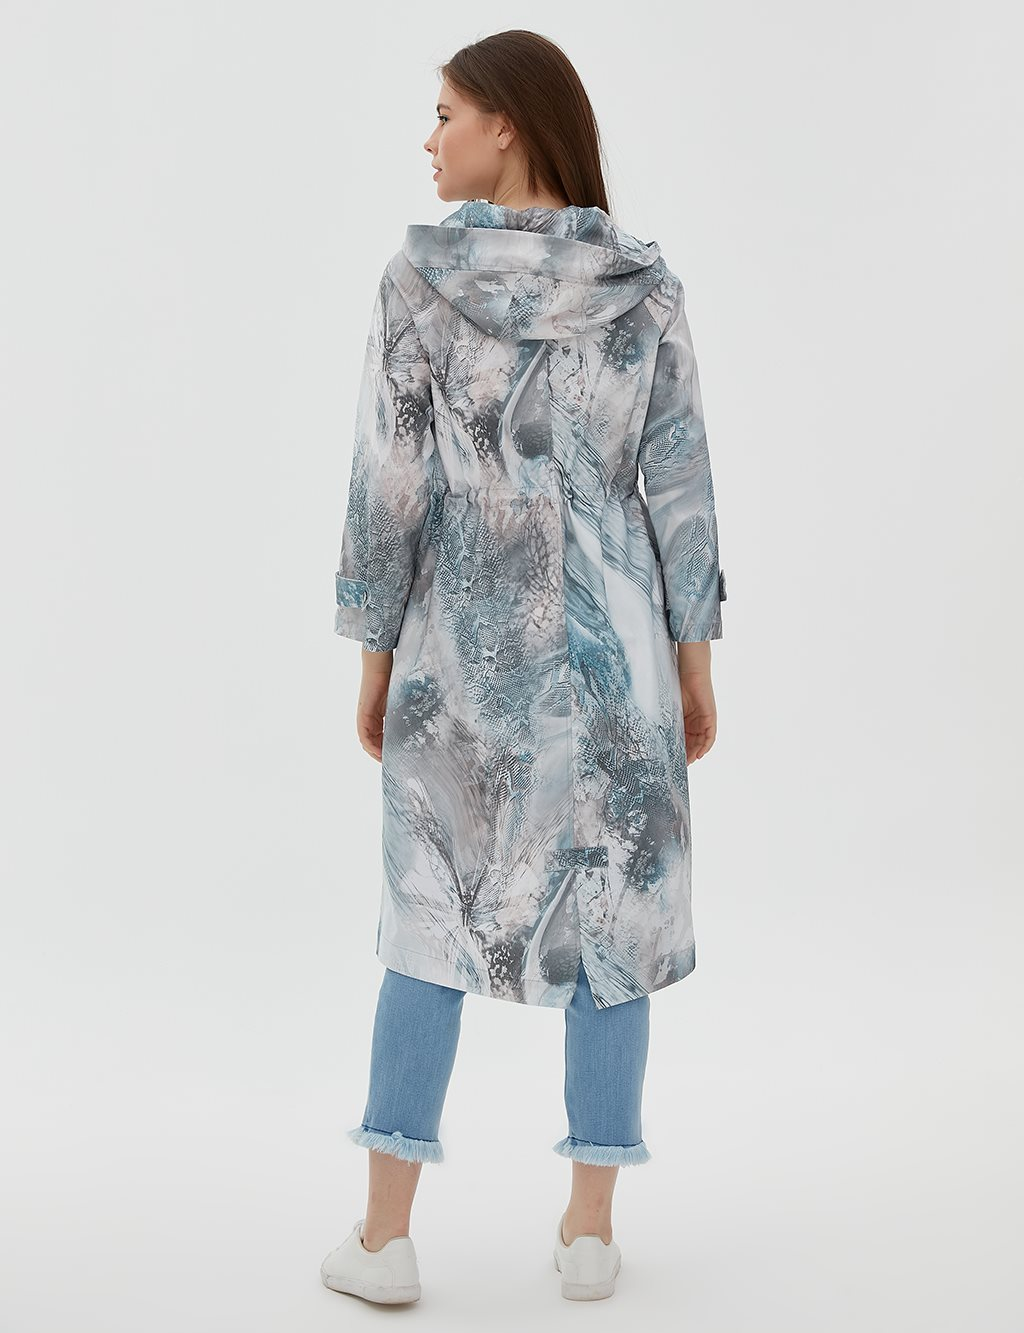 KYR Patterned Coat With Hood B20 74002 Grey